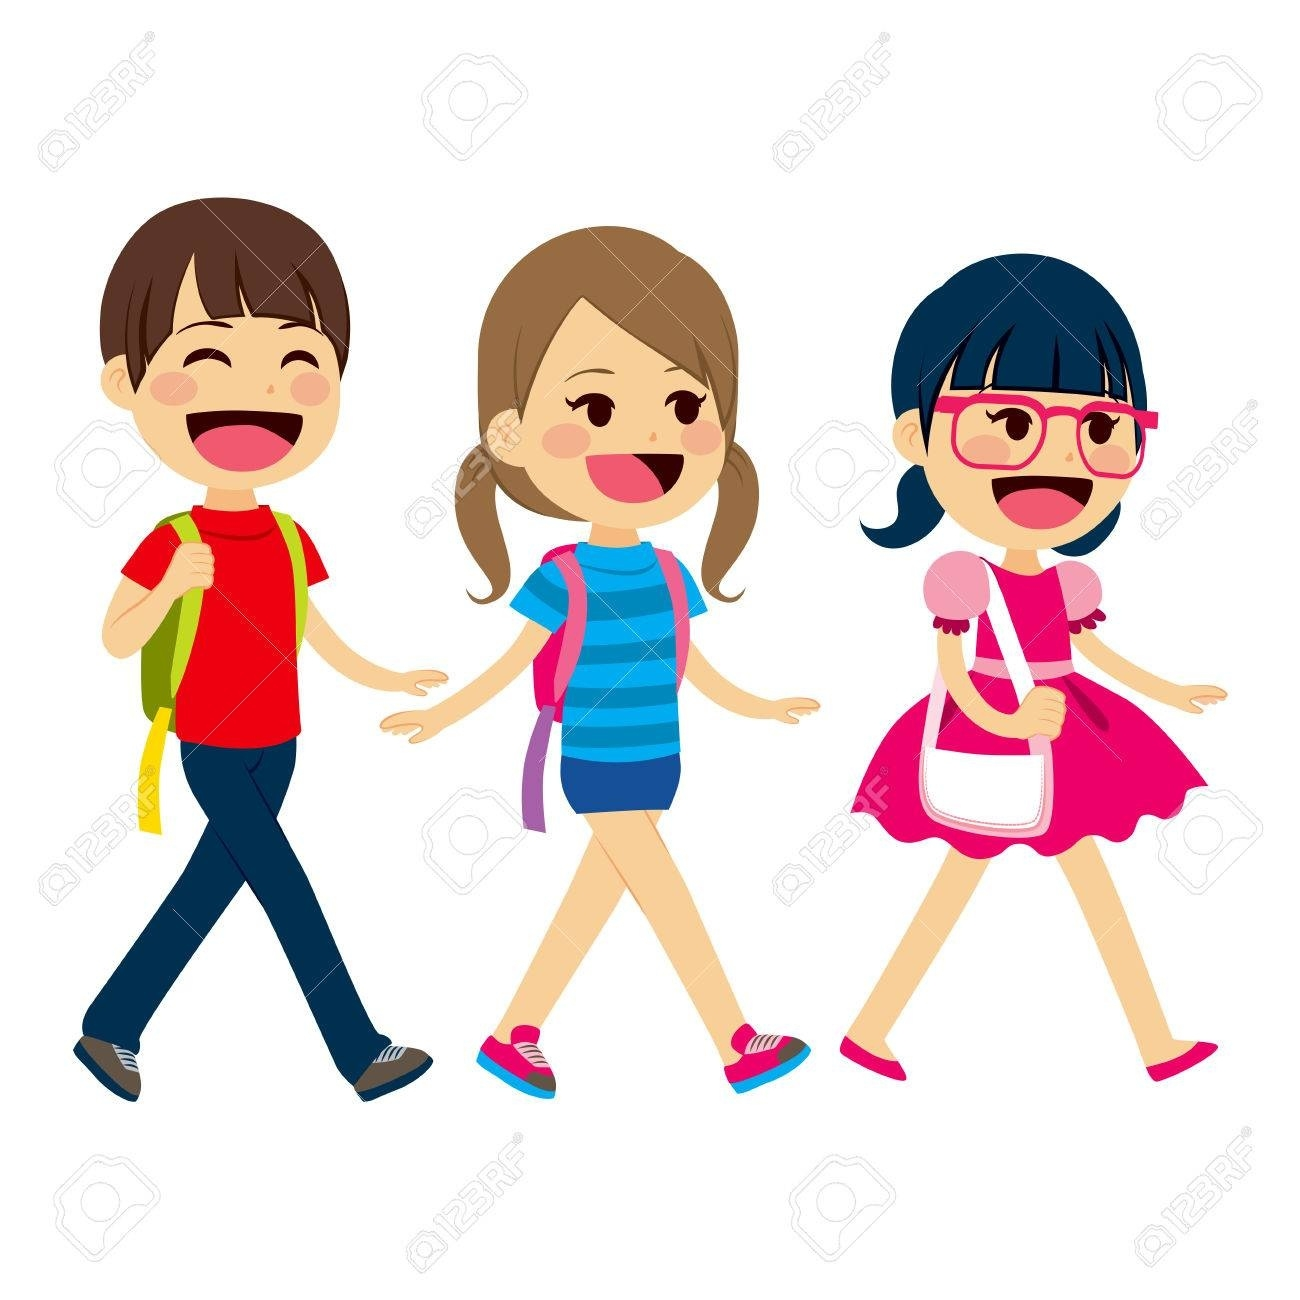 Students writings and essays. Student clipart walking